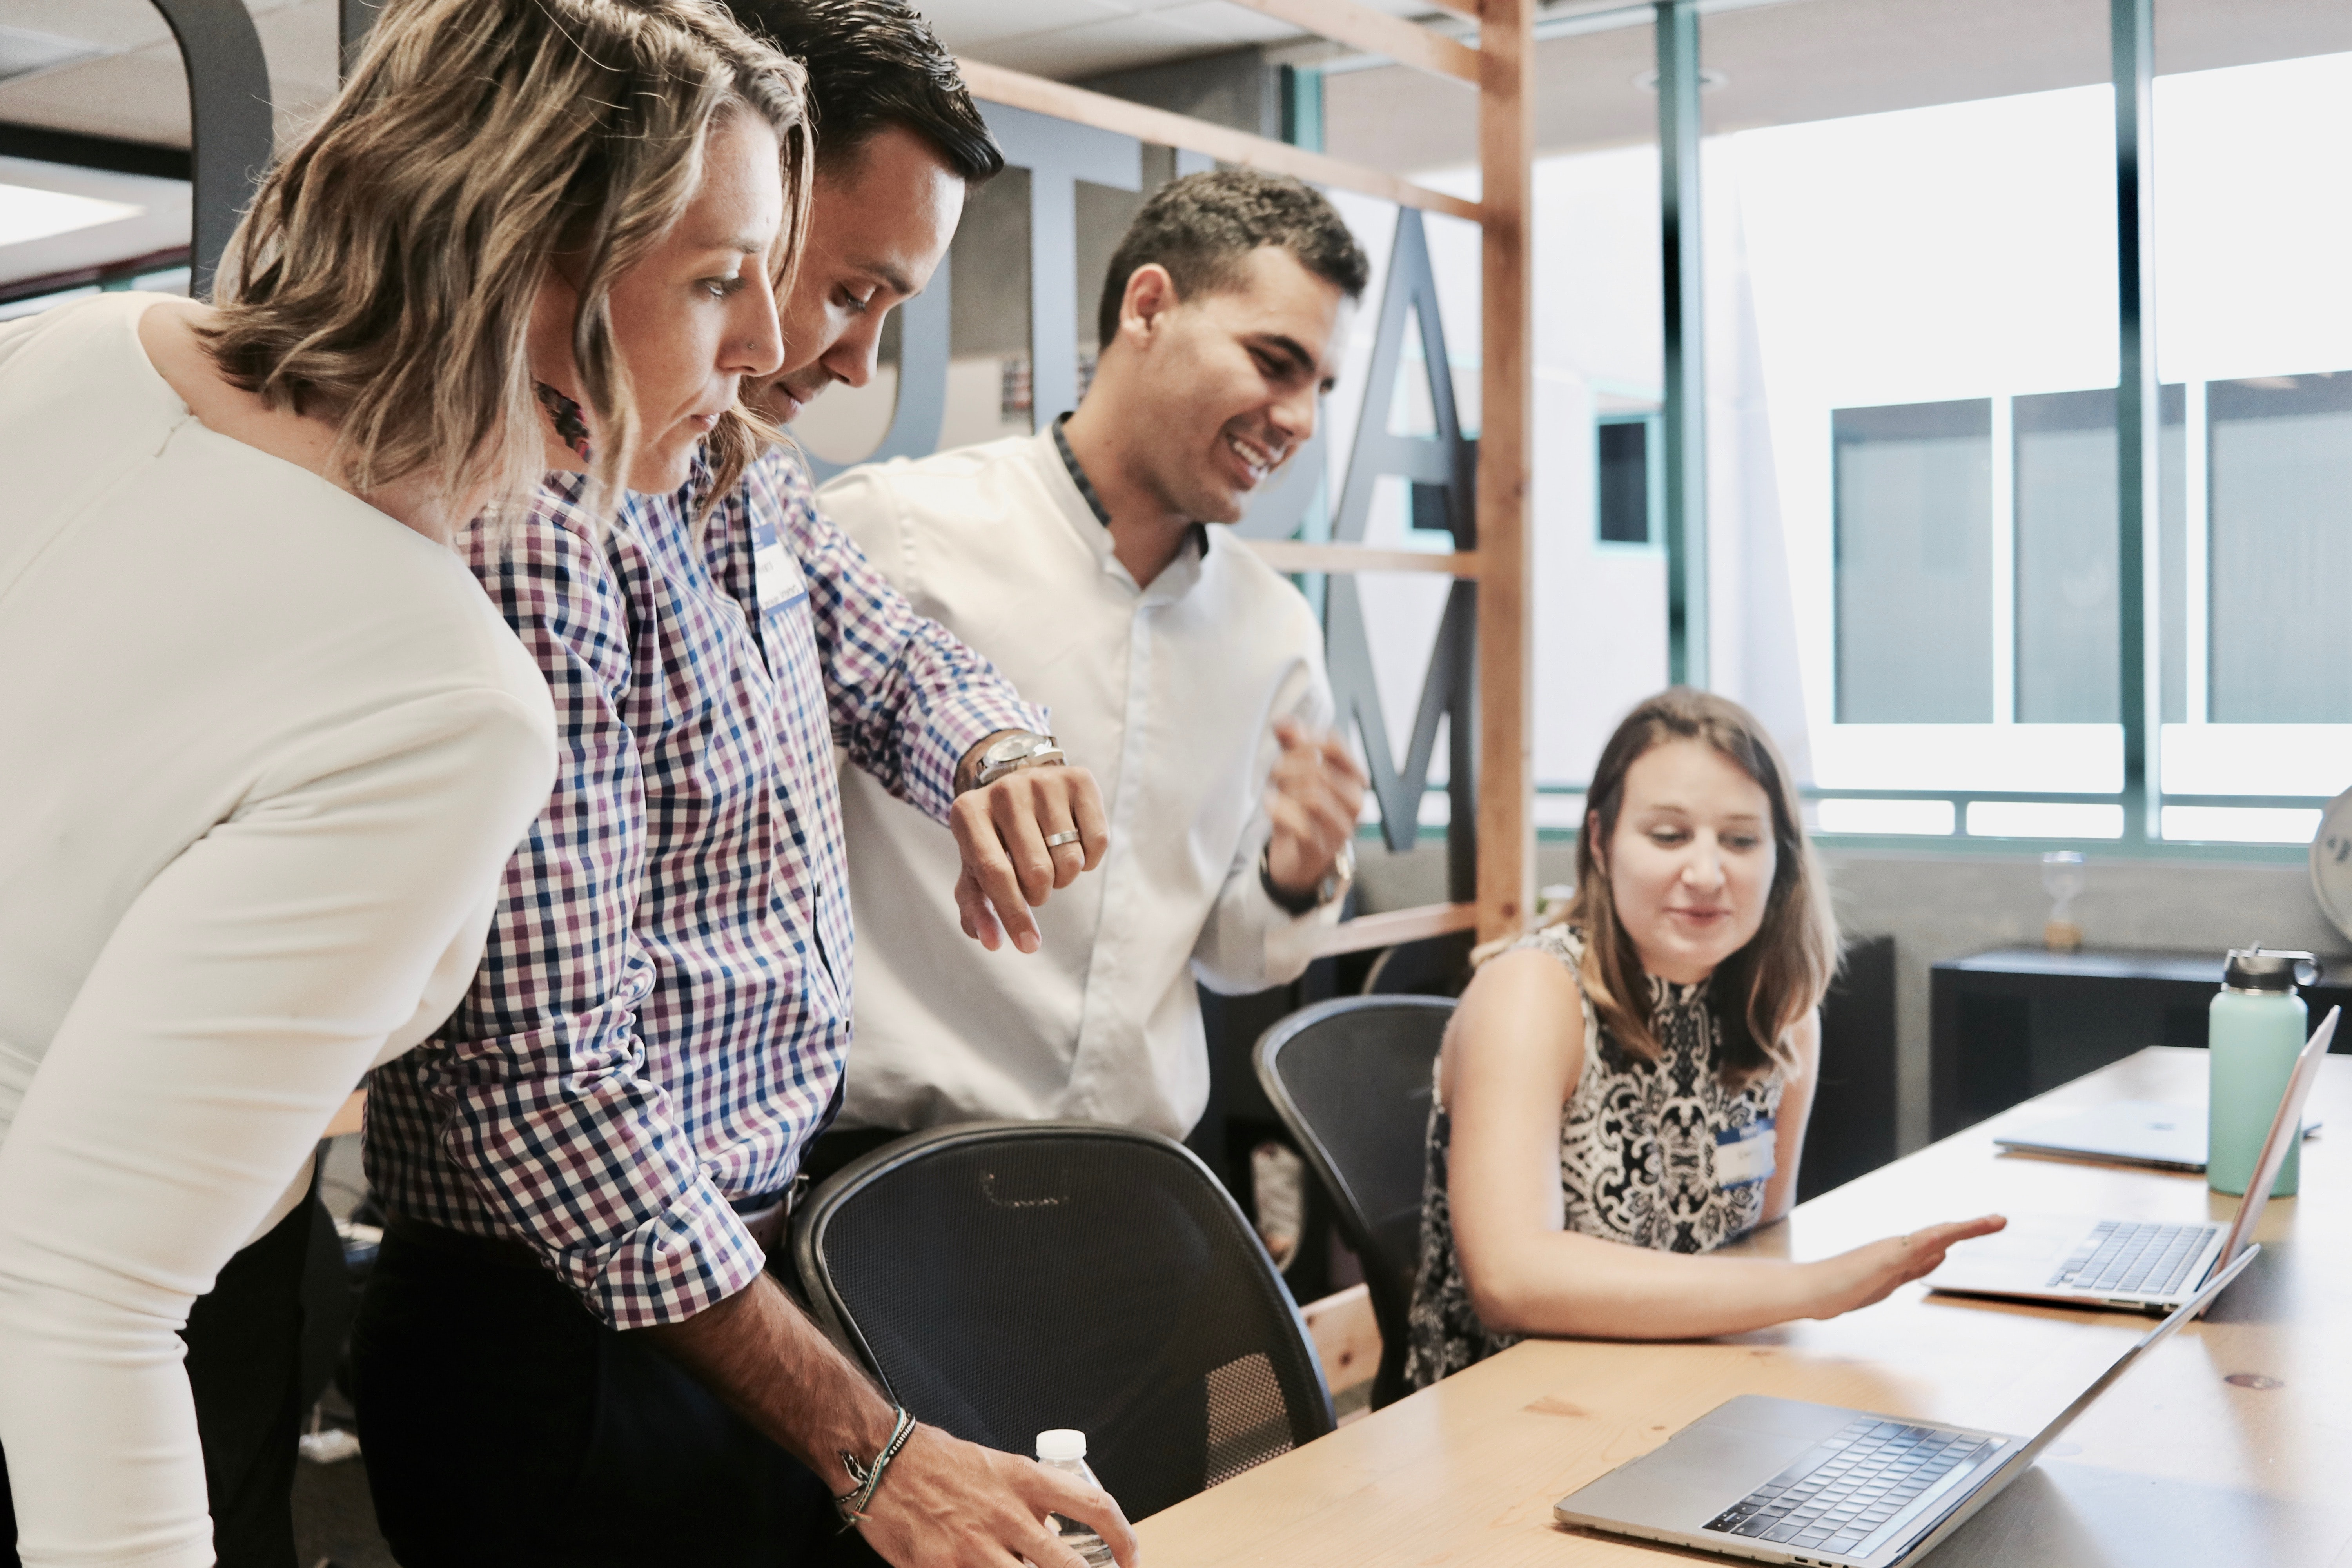 Up Your Strategies to Retain Employees